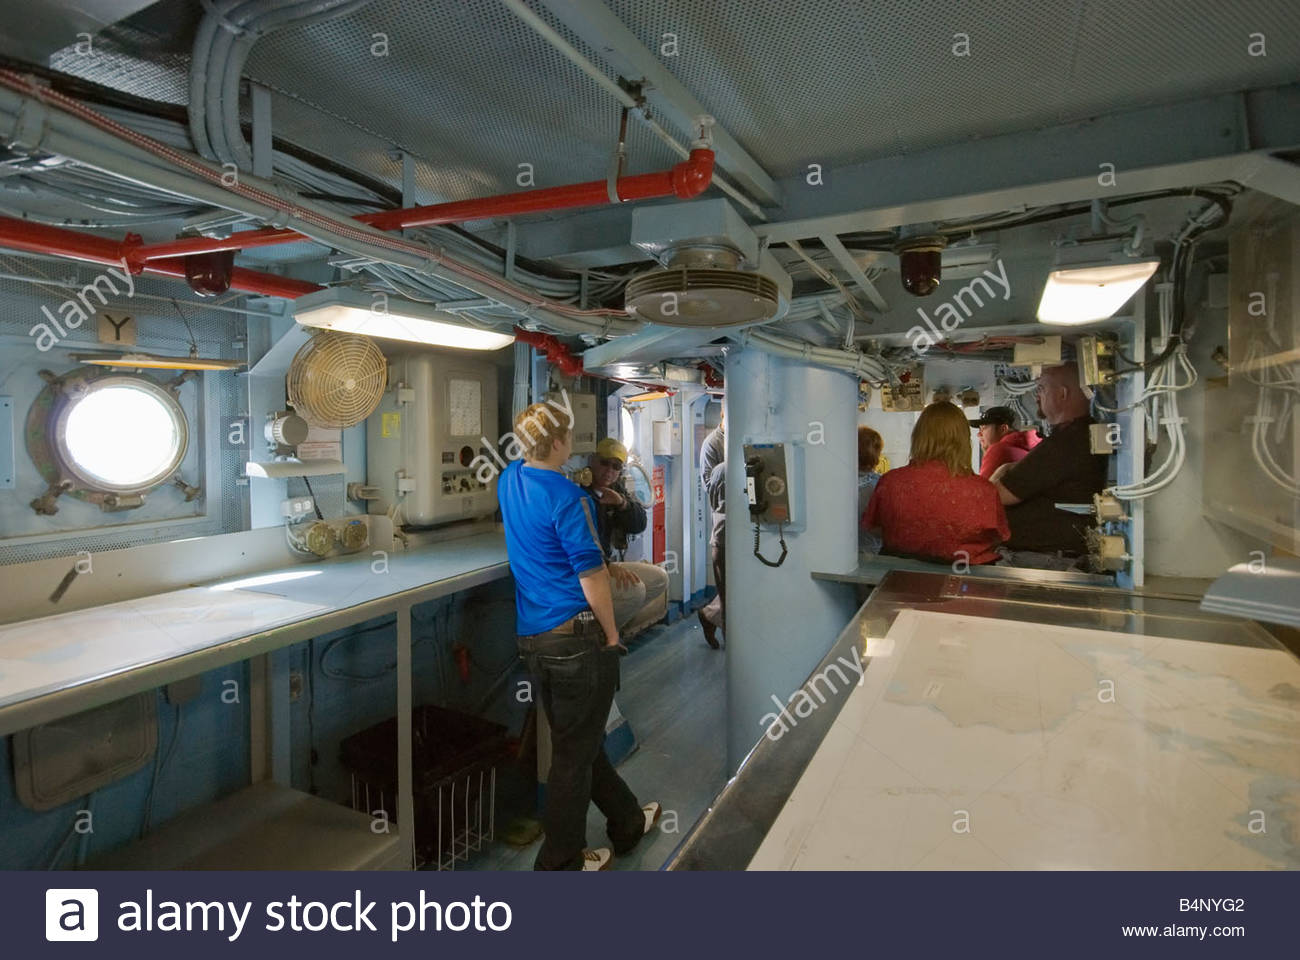 Air Craft Carrier Museum In San Diego